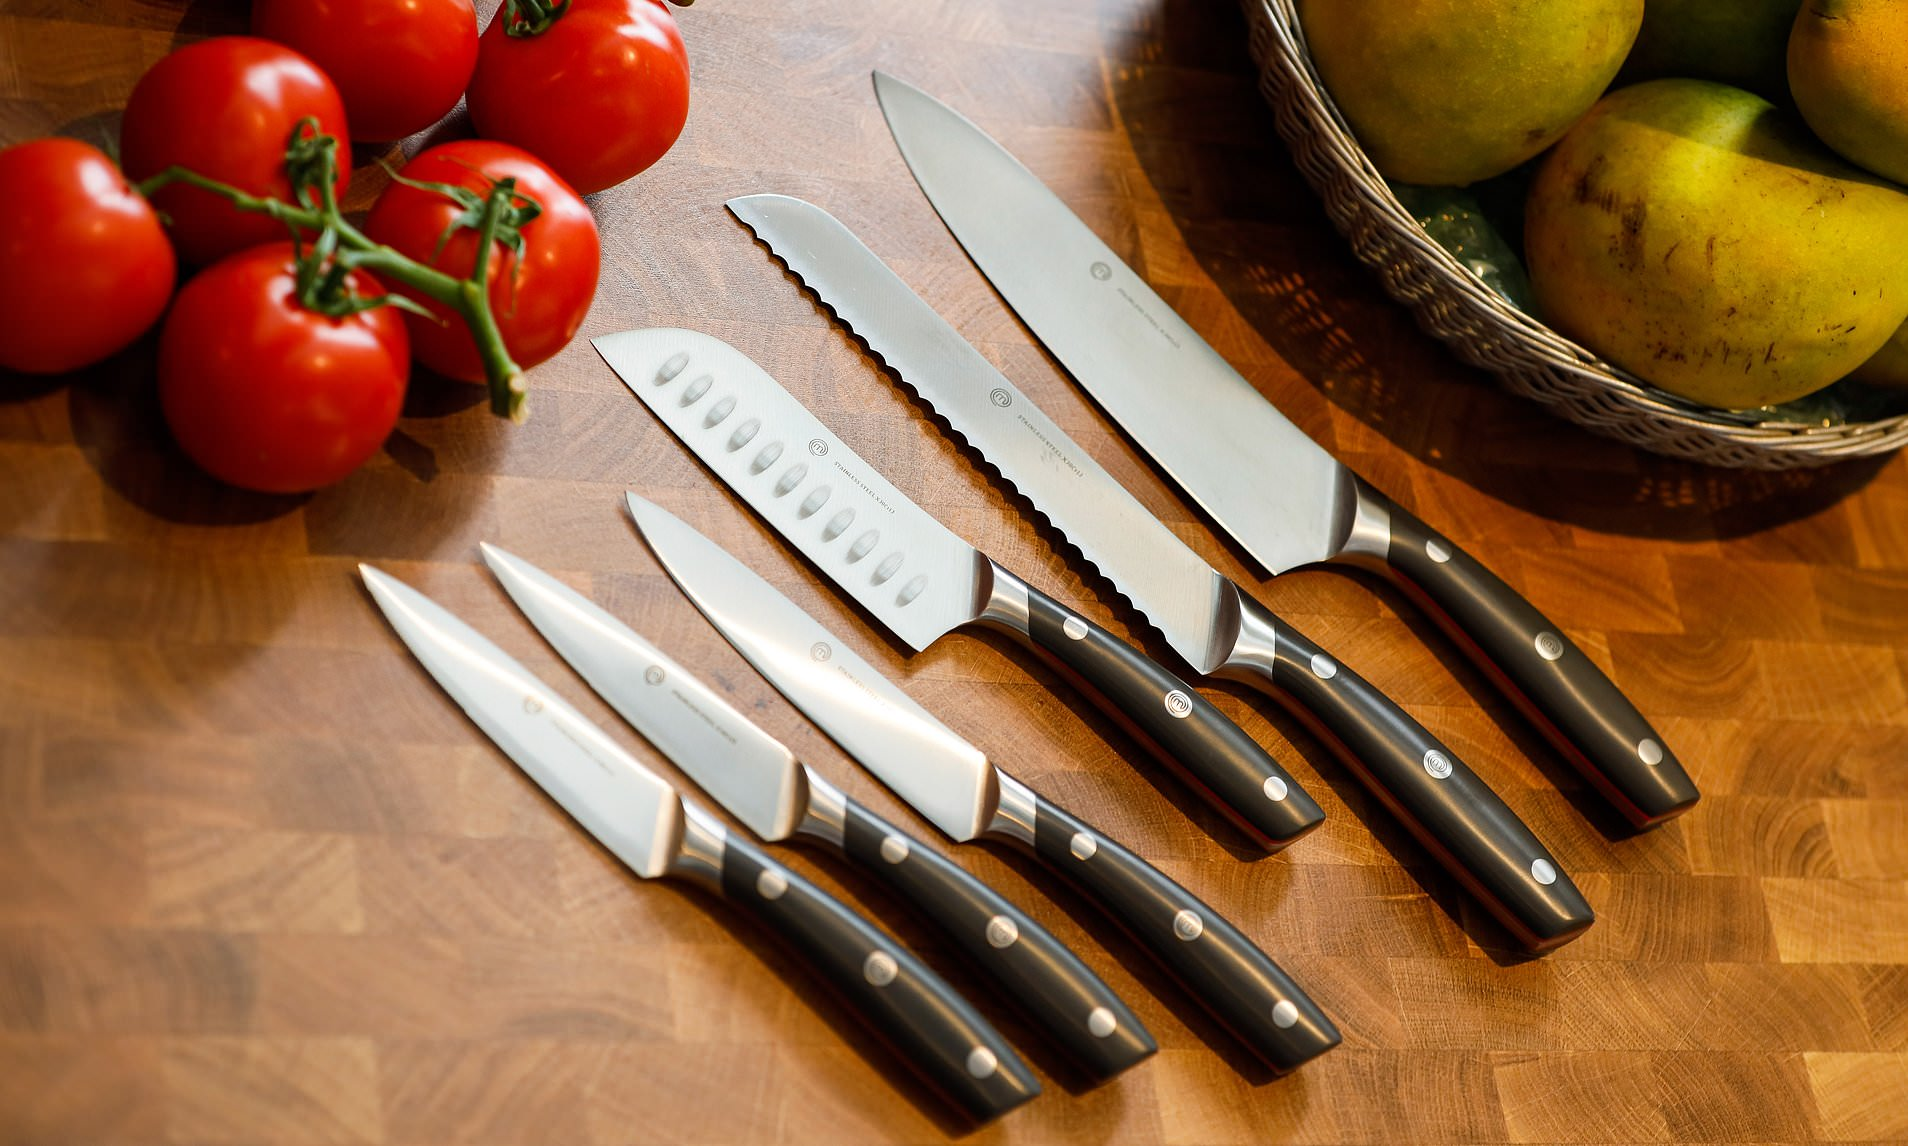 Chef-Knives 25+ Best Brother Gift Ideas to Give on His Birthday 2020/2021